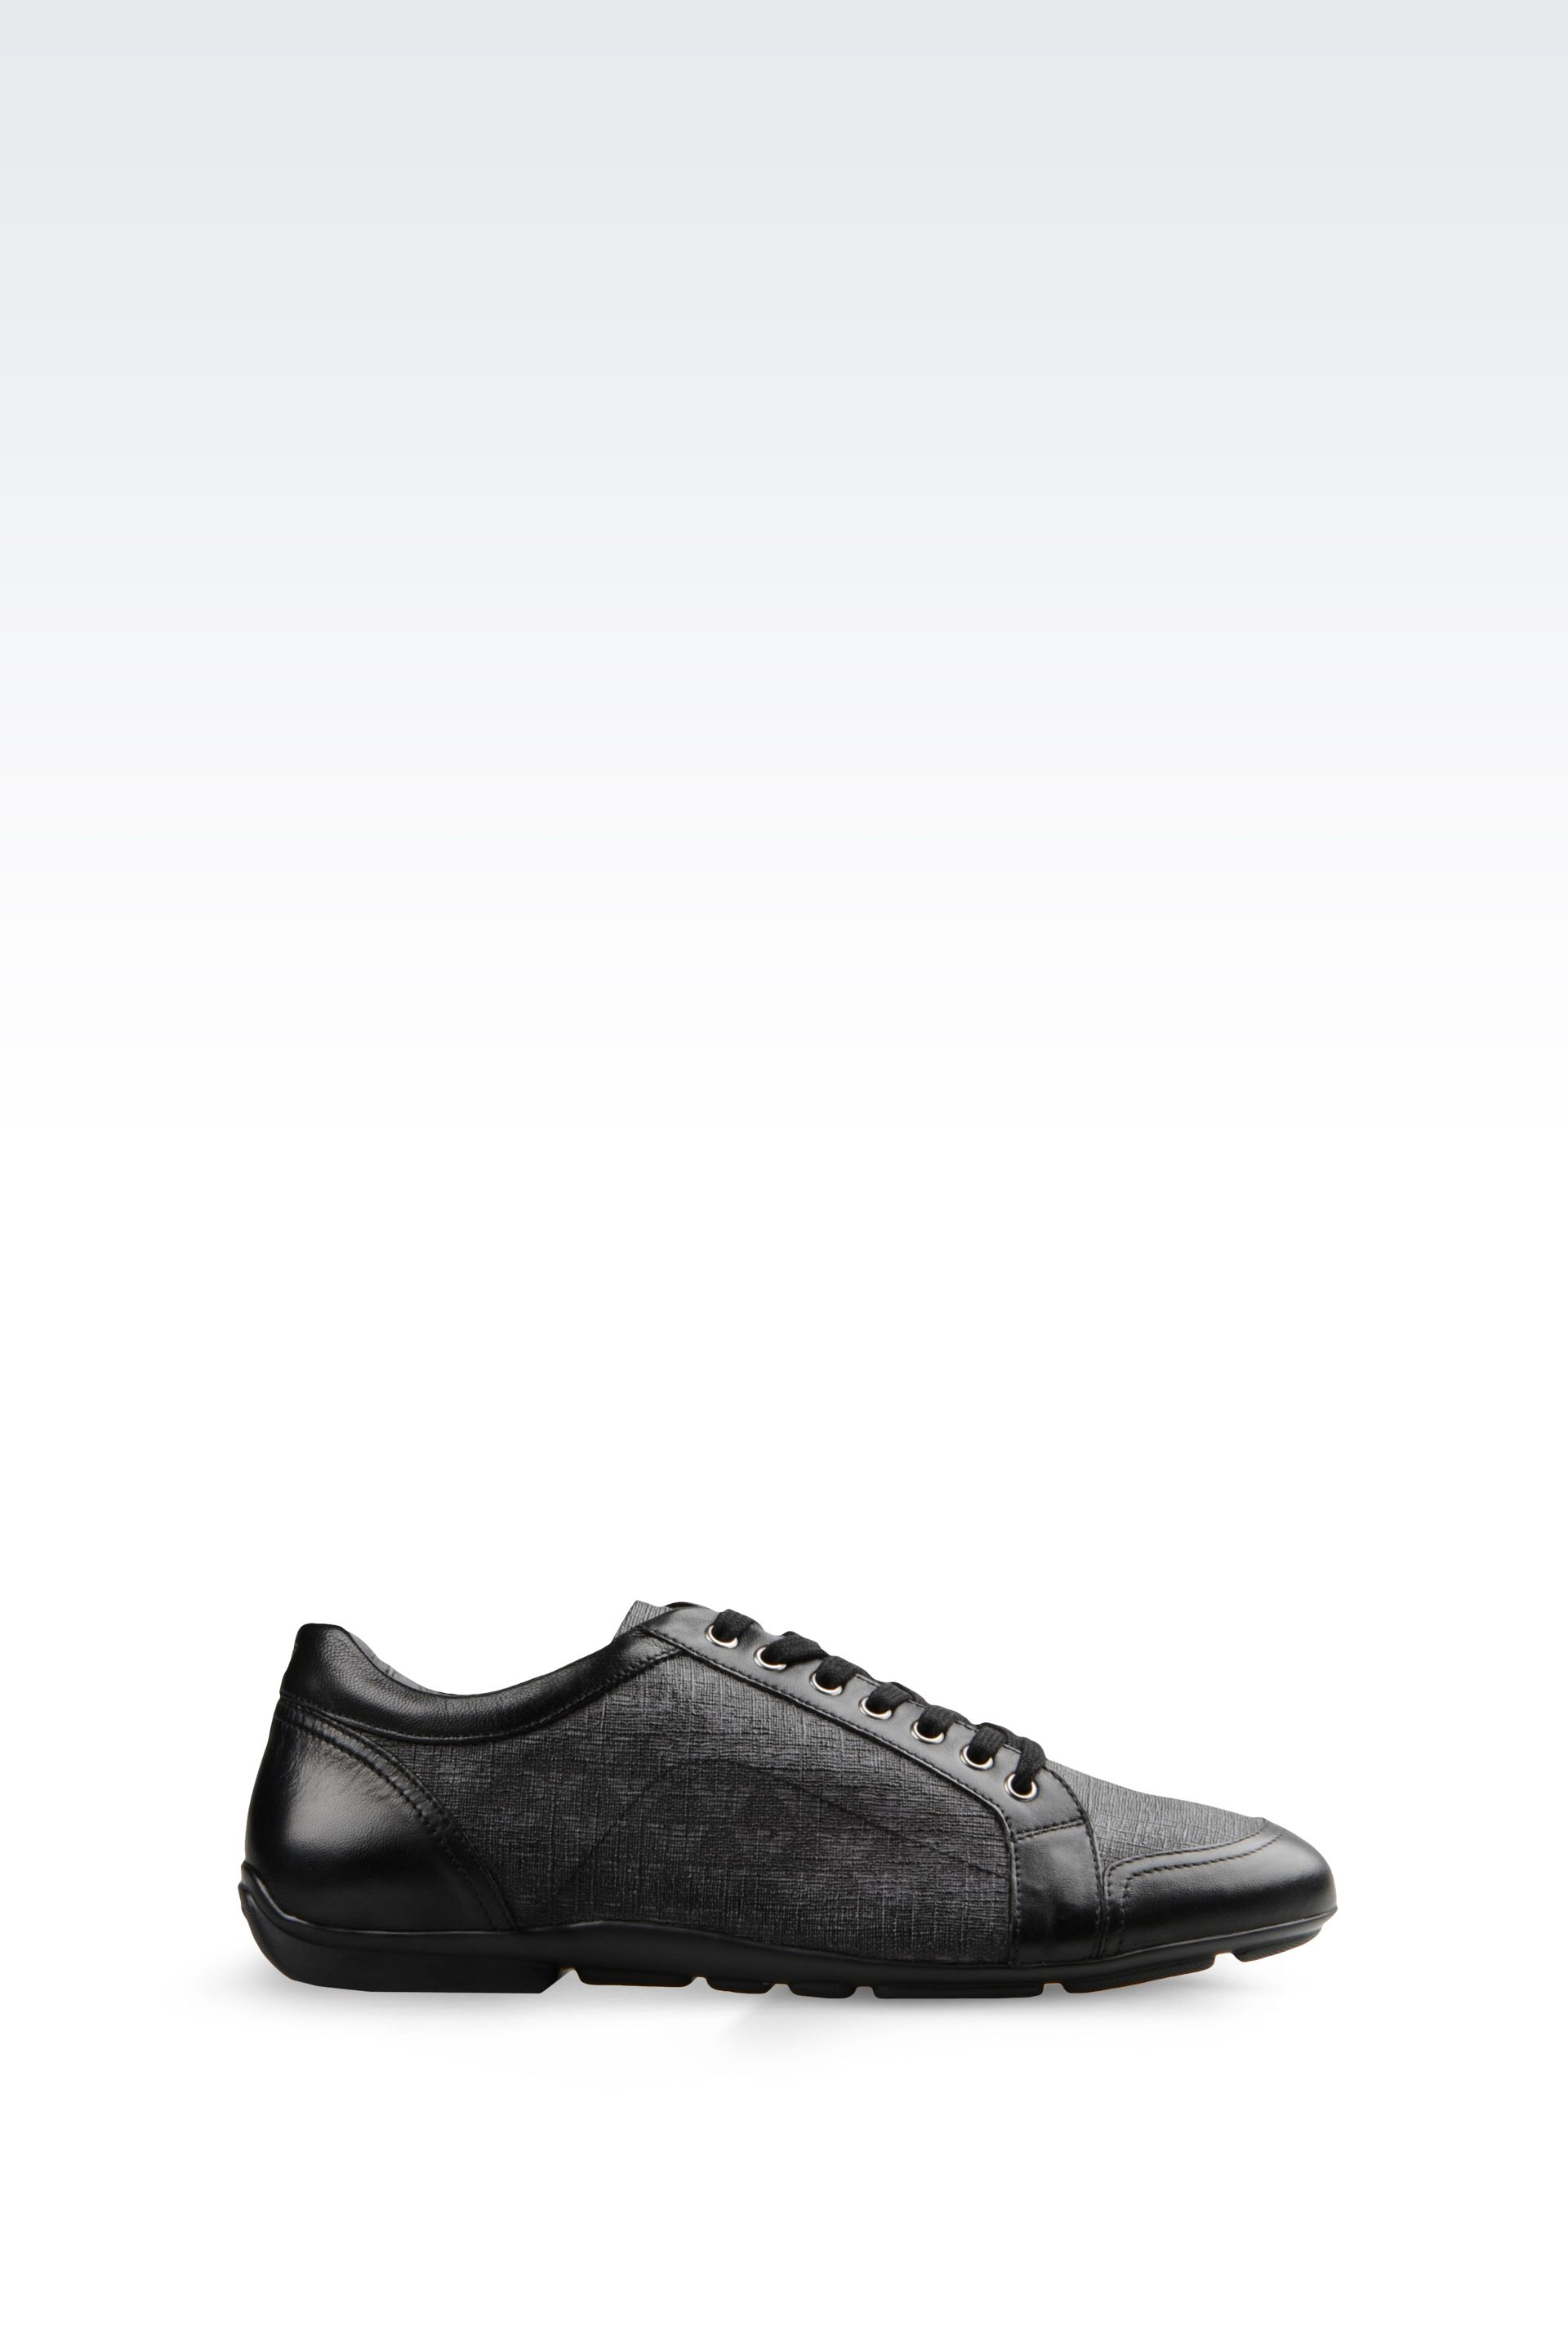 90ce2268d Emporio Armani Sneaker In Napa Leather And Logo Patterned Pvc in ...